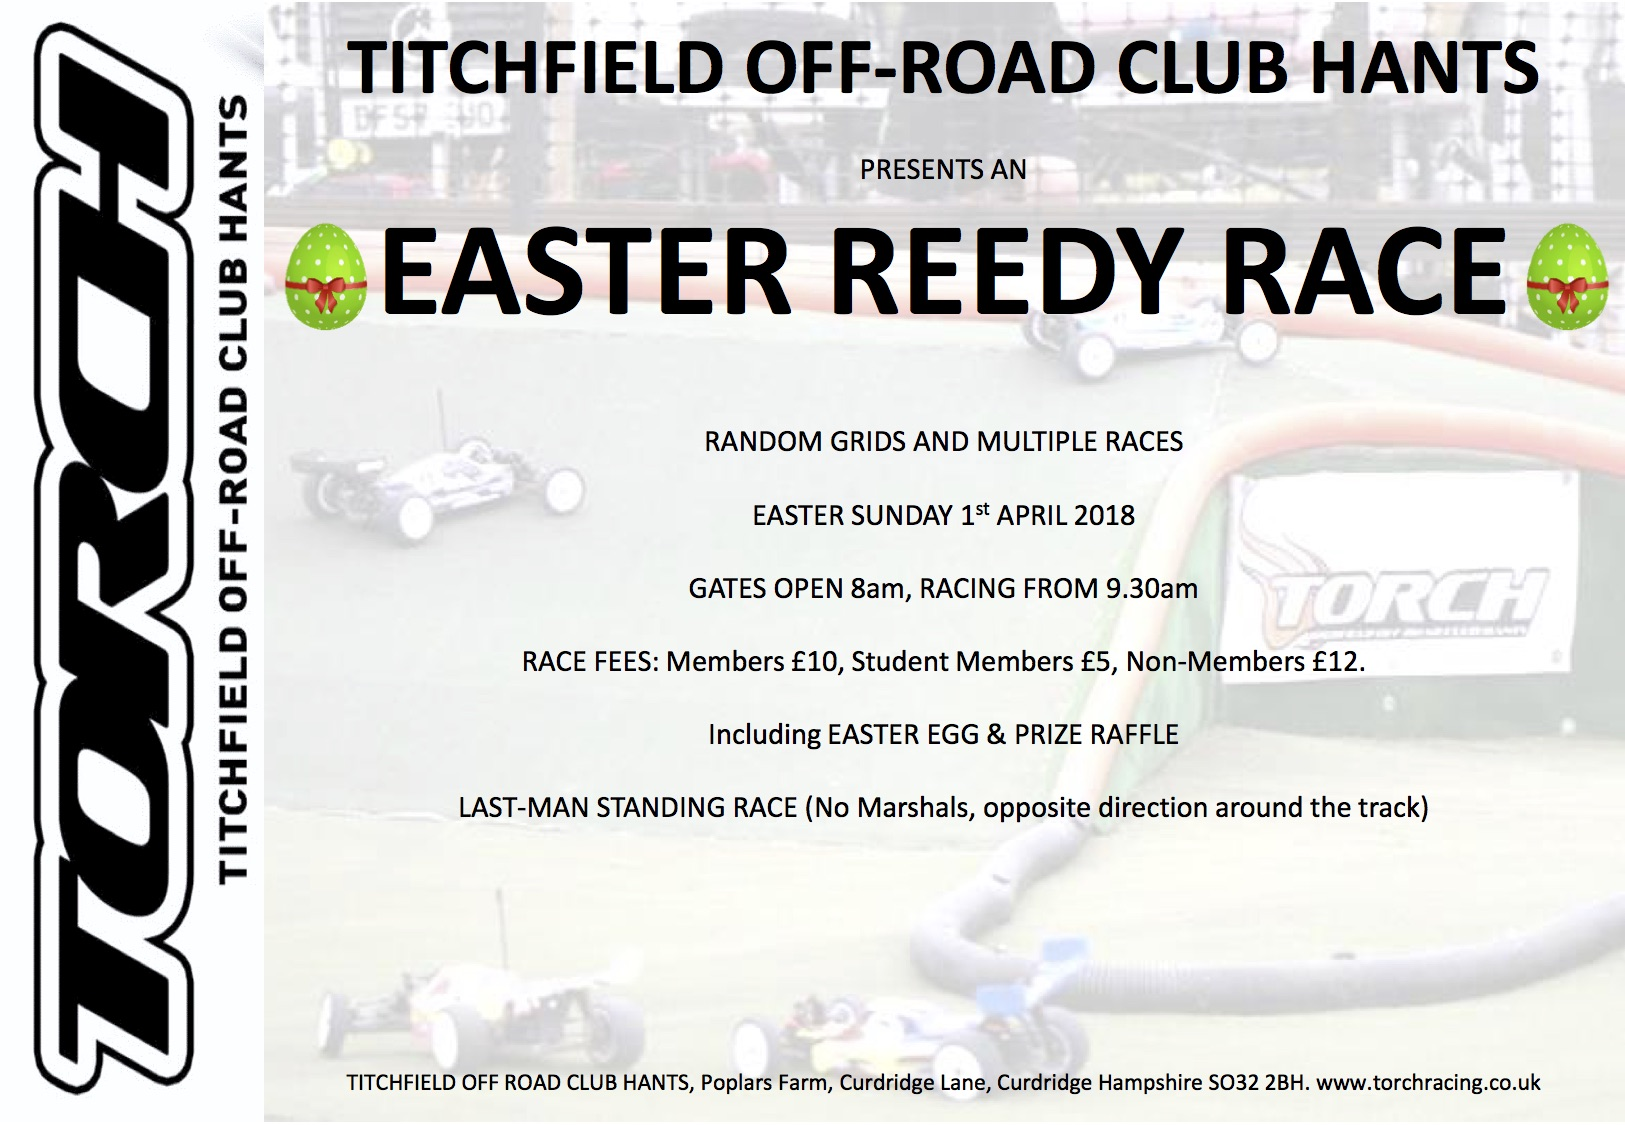 Easter Reedy Race